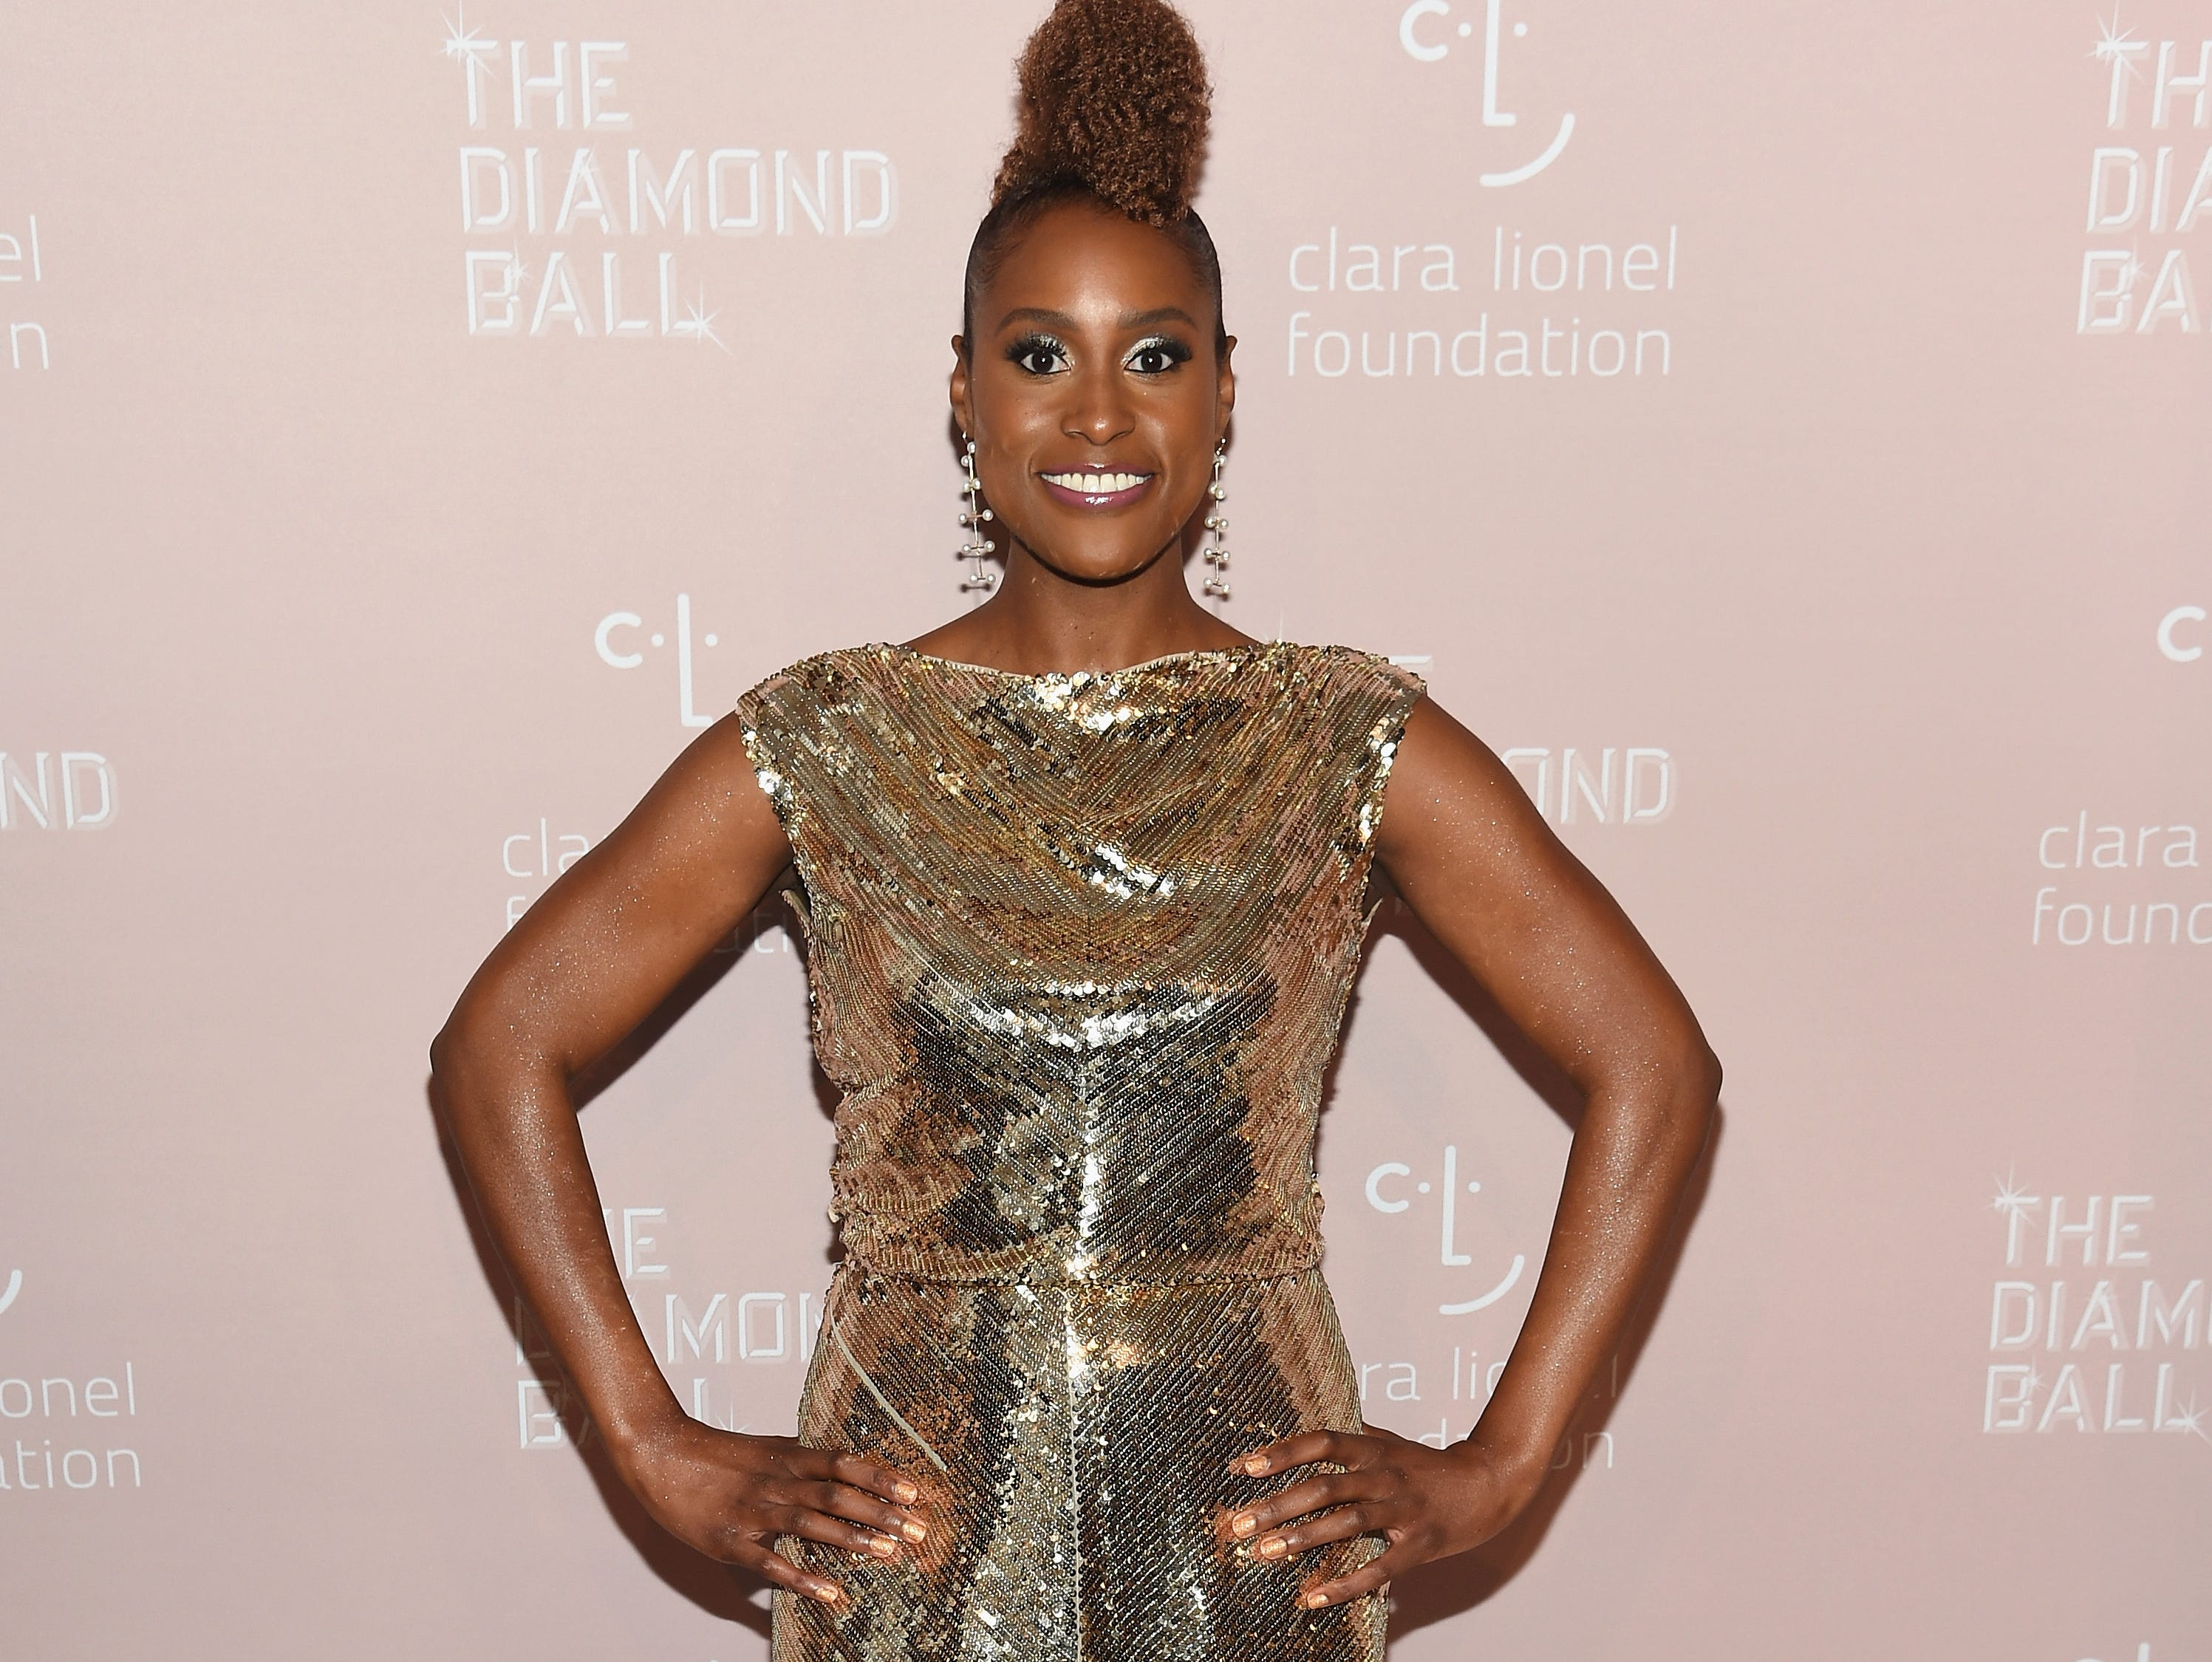 NEW YORK, NY - SEPTEMBER 13:  Issa Rae attends Rihanna's 4th Annual Diamond Ball benefitting The Clara Lionel Foundation at Cipriani Wall Street on September 13, 2018 in New York City.  (Photo by Dimitrios Kambouris/Getty Images for Diamond Ball) ORG XMIT: 775197456 ORIG FILE ID: 1032913004